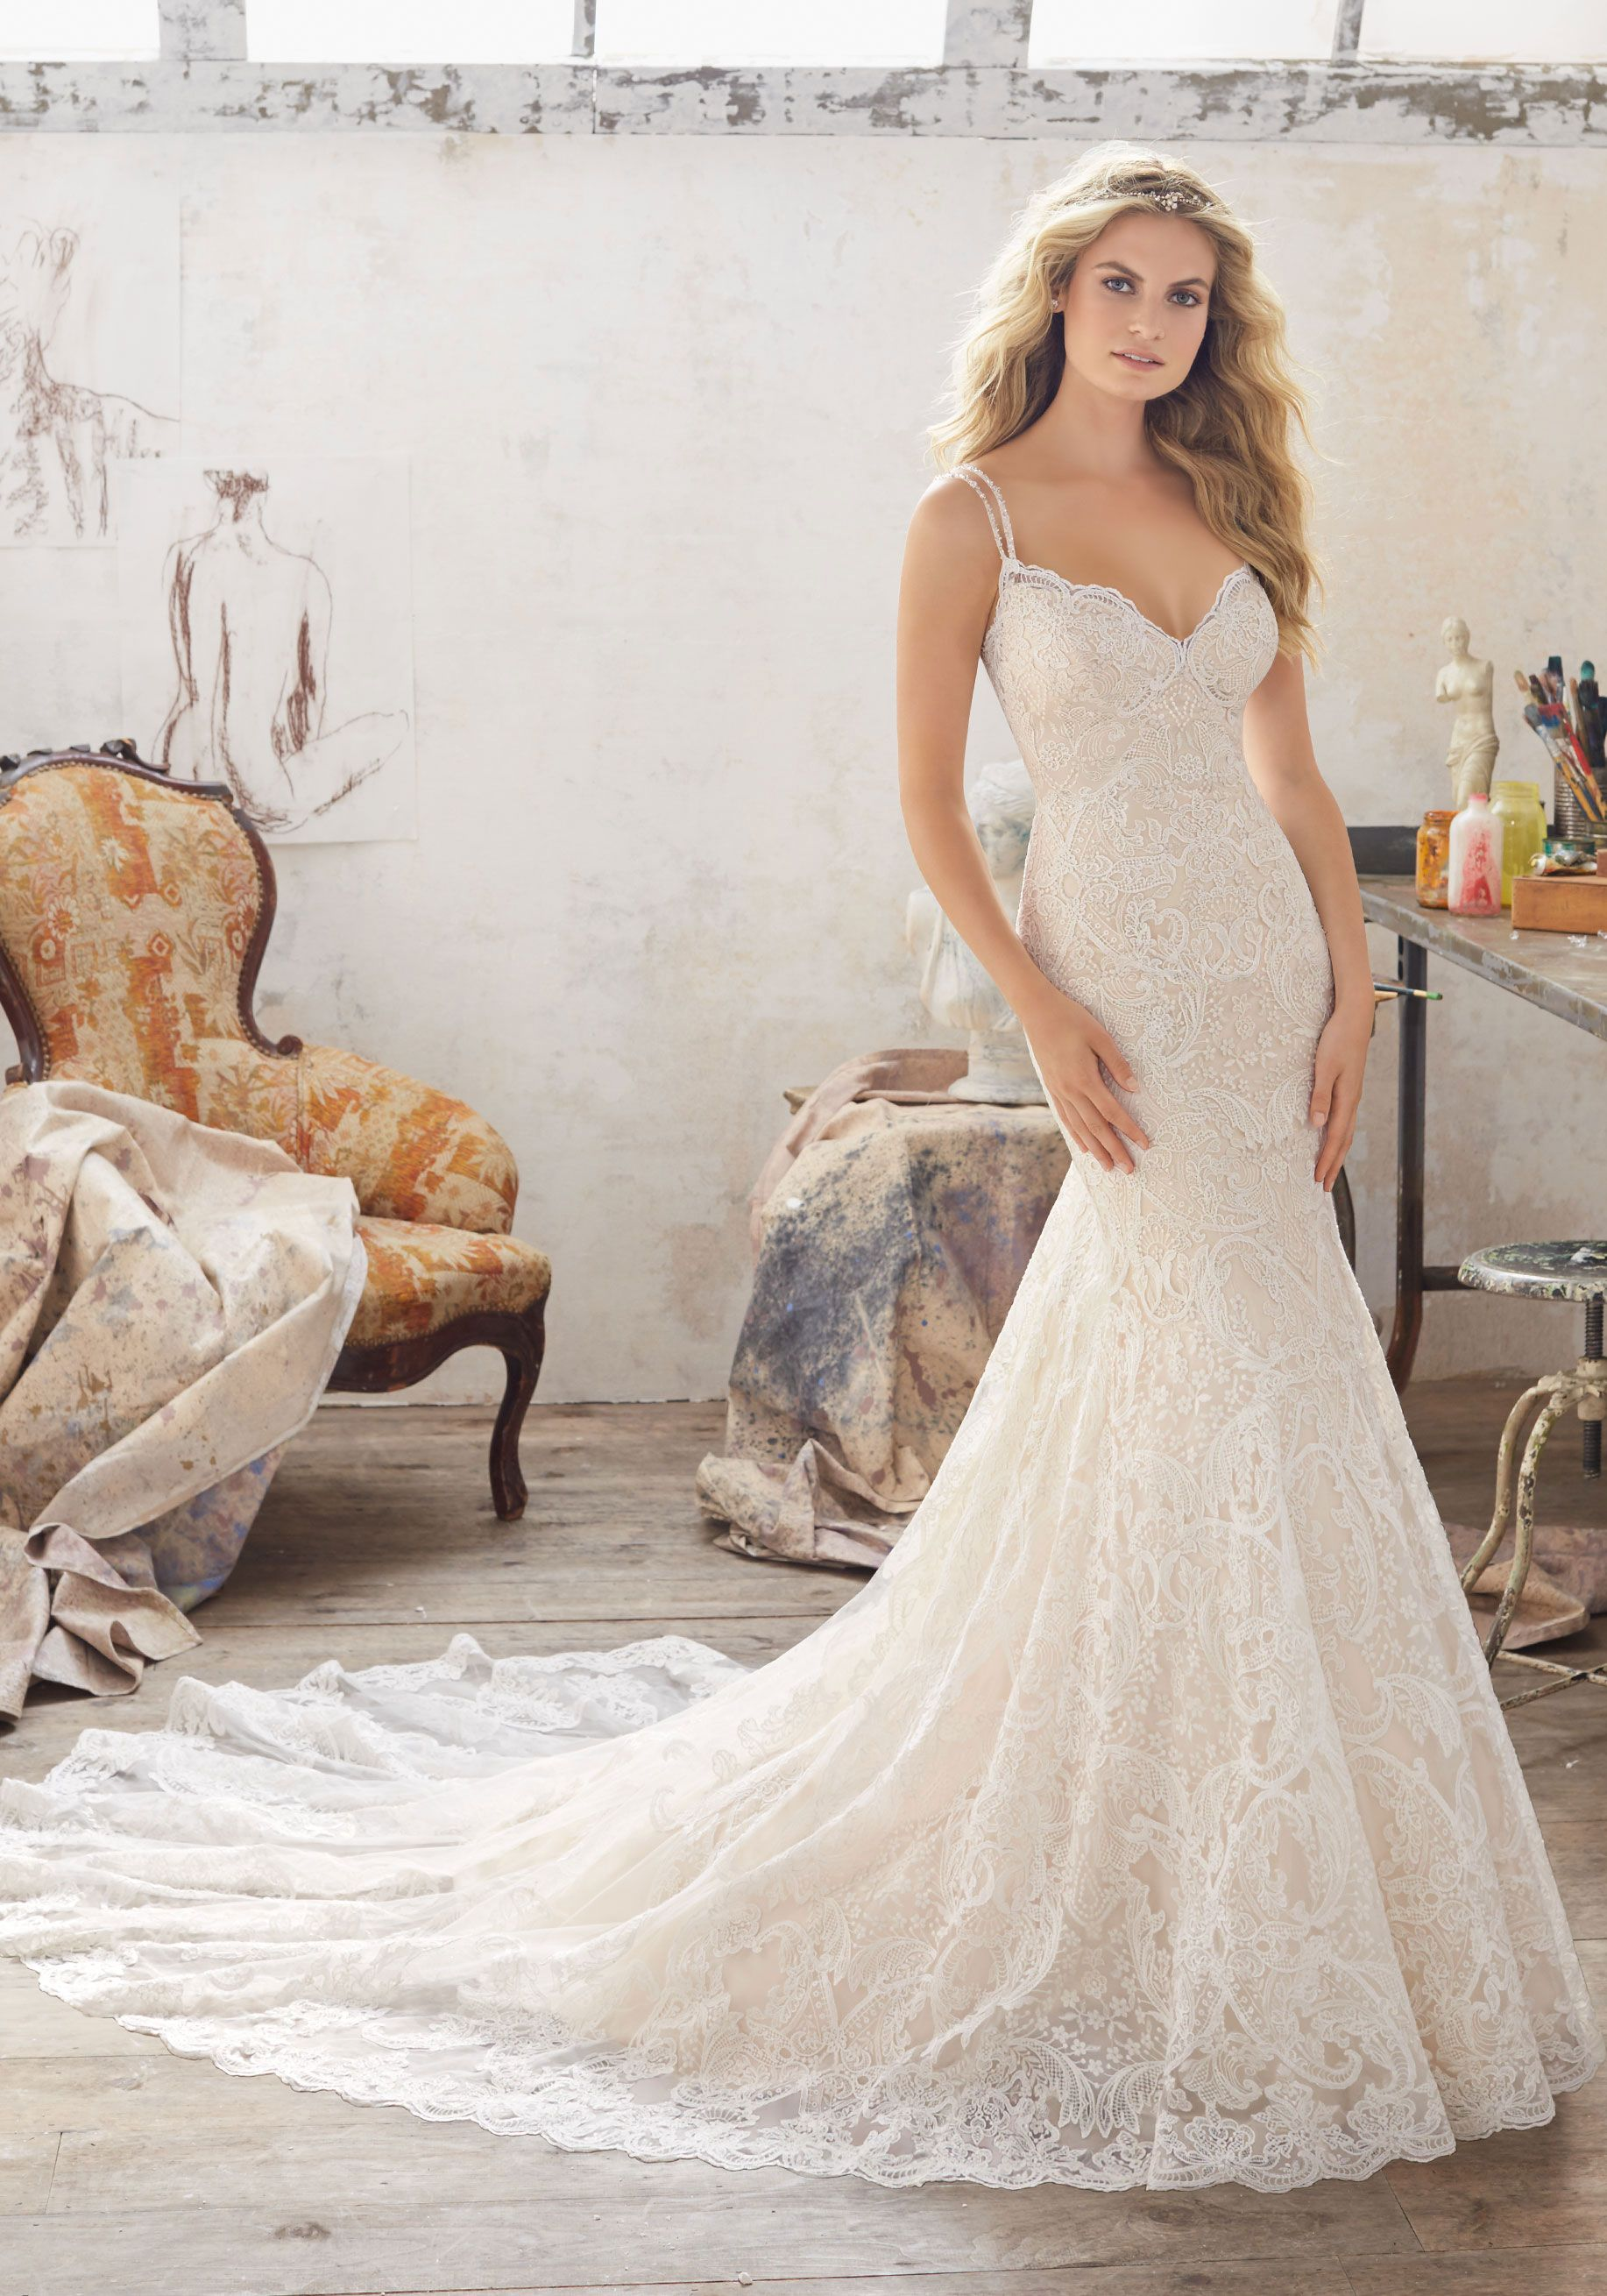 Lovely Morilee by Madeline Gardner uMalia u Romantic Wedding Dress Featuring Beautiful Allover Embroidered